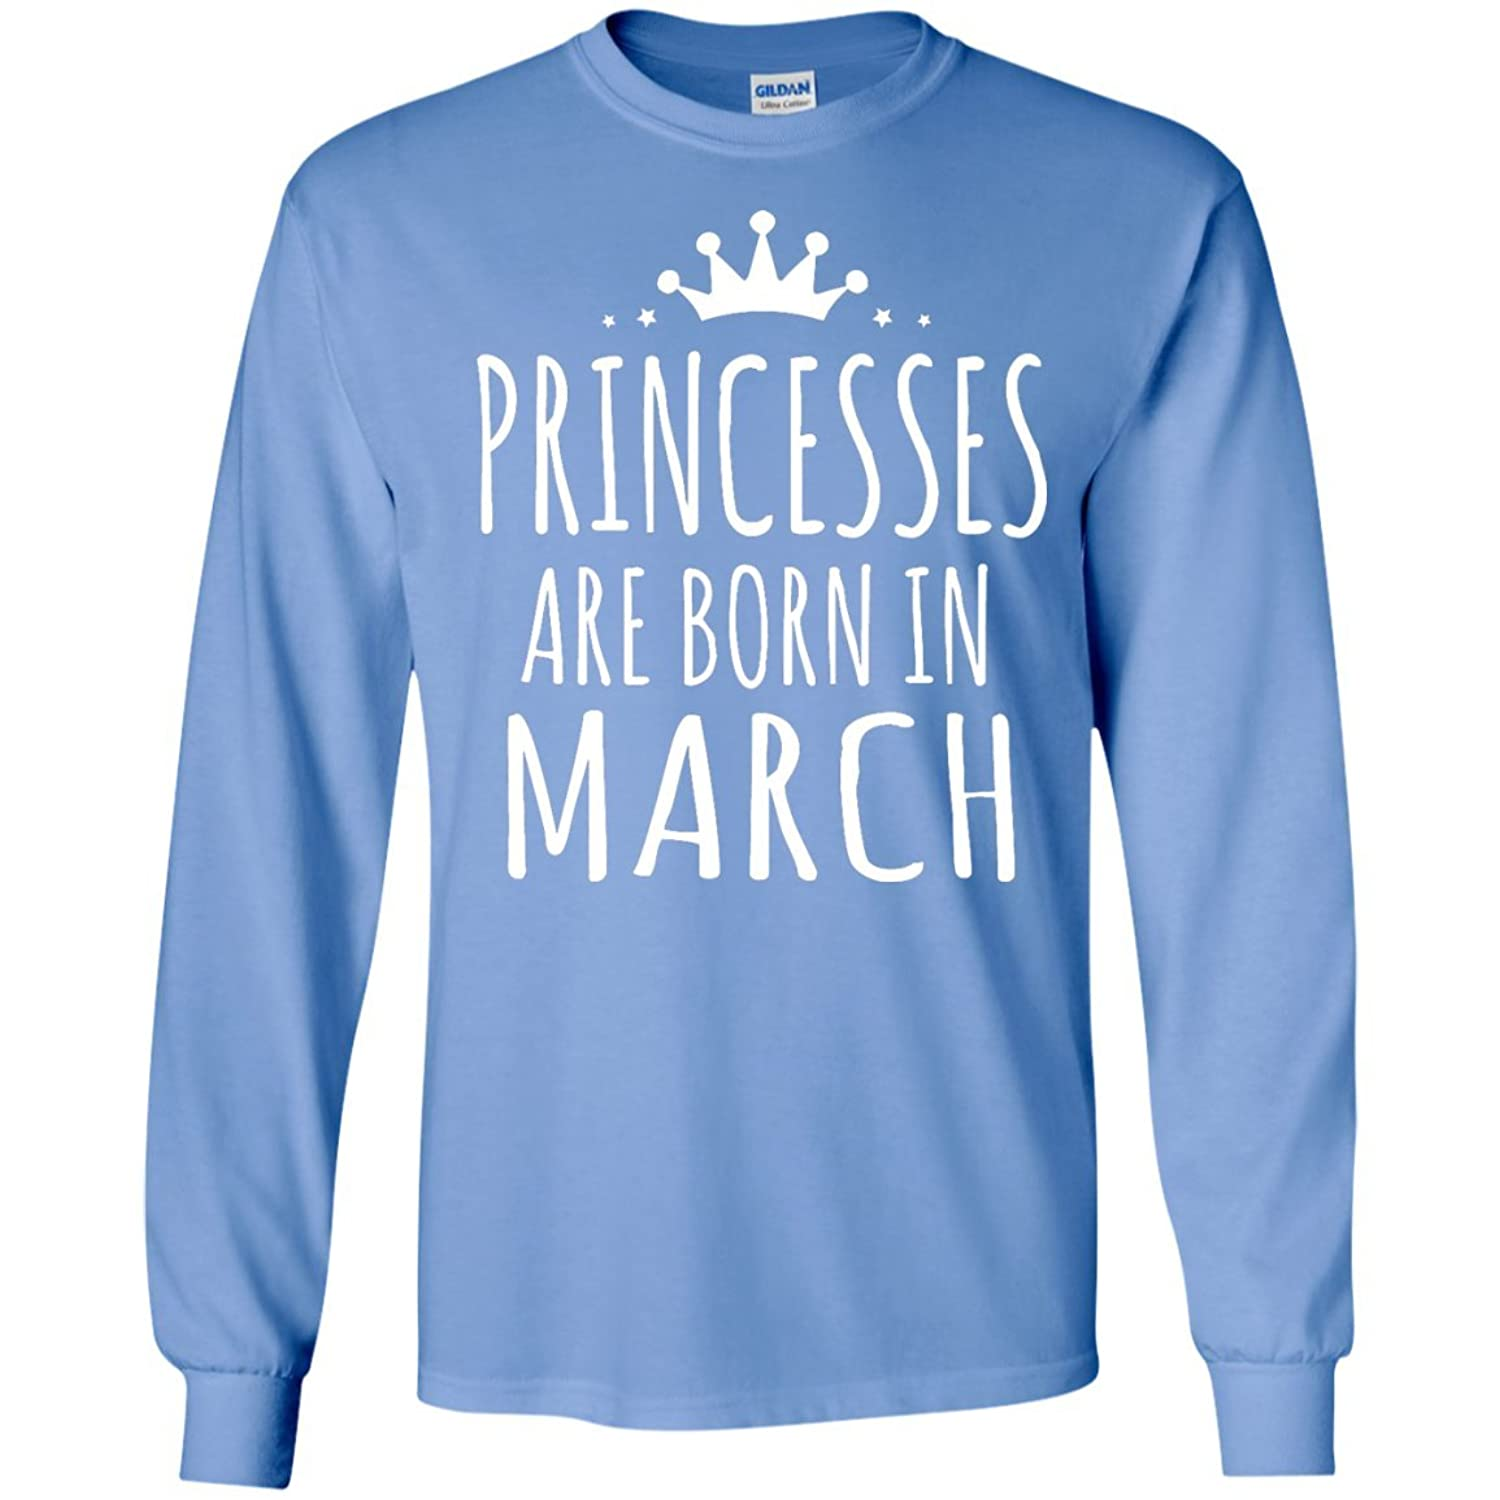 Princesses are born in March Men size Long sleeves